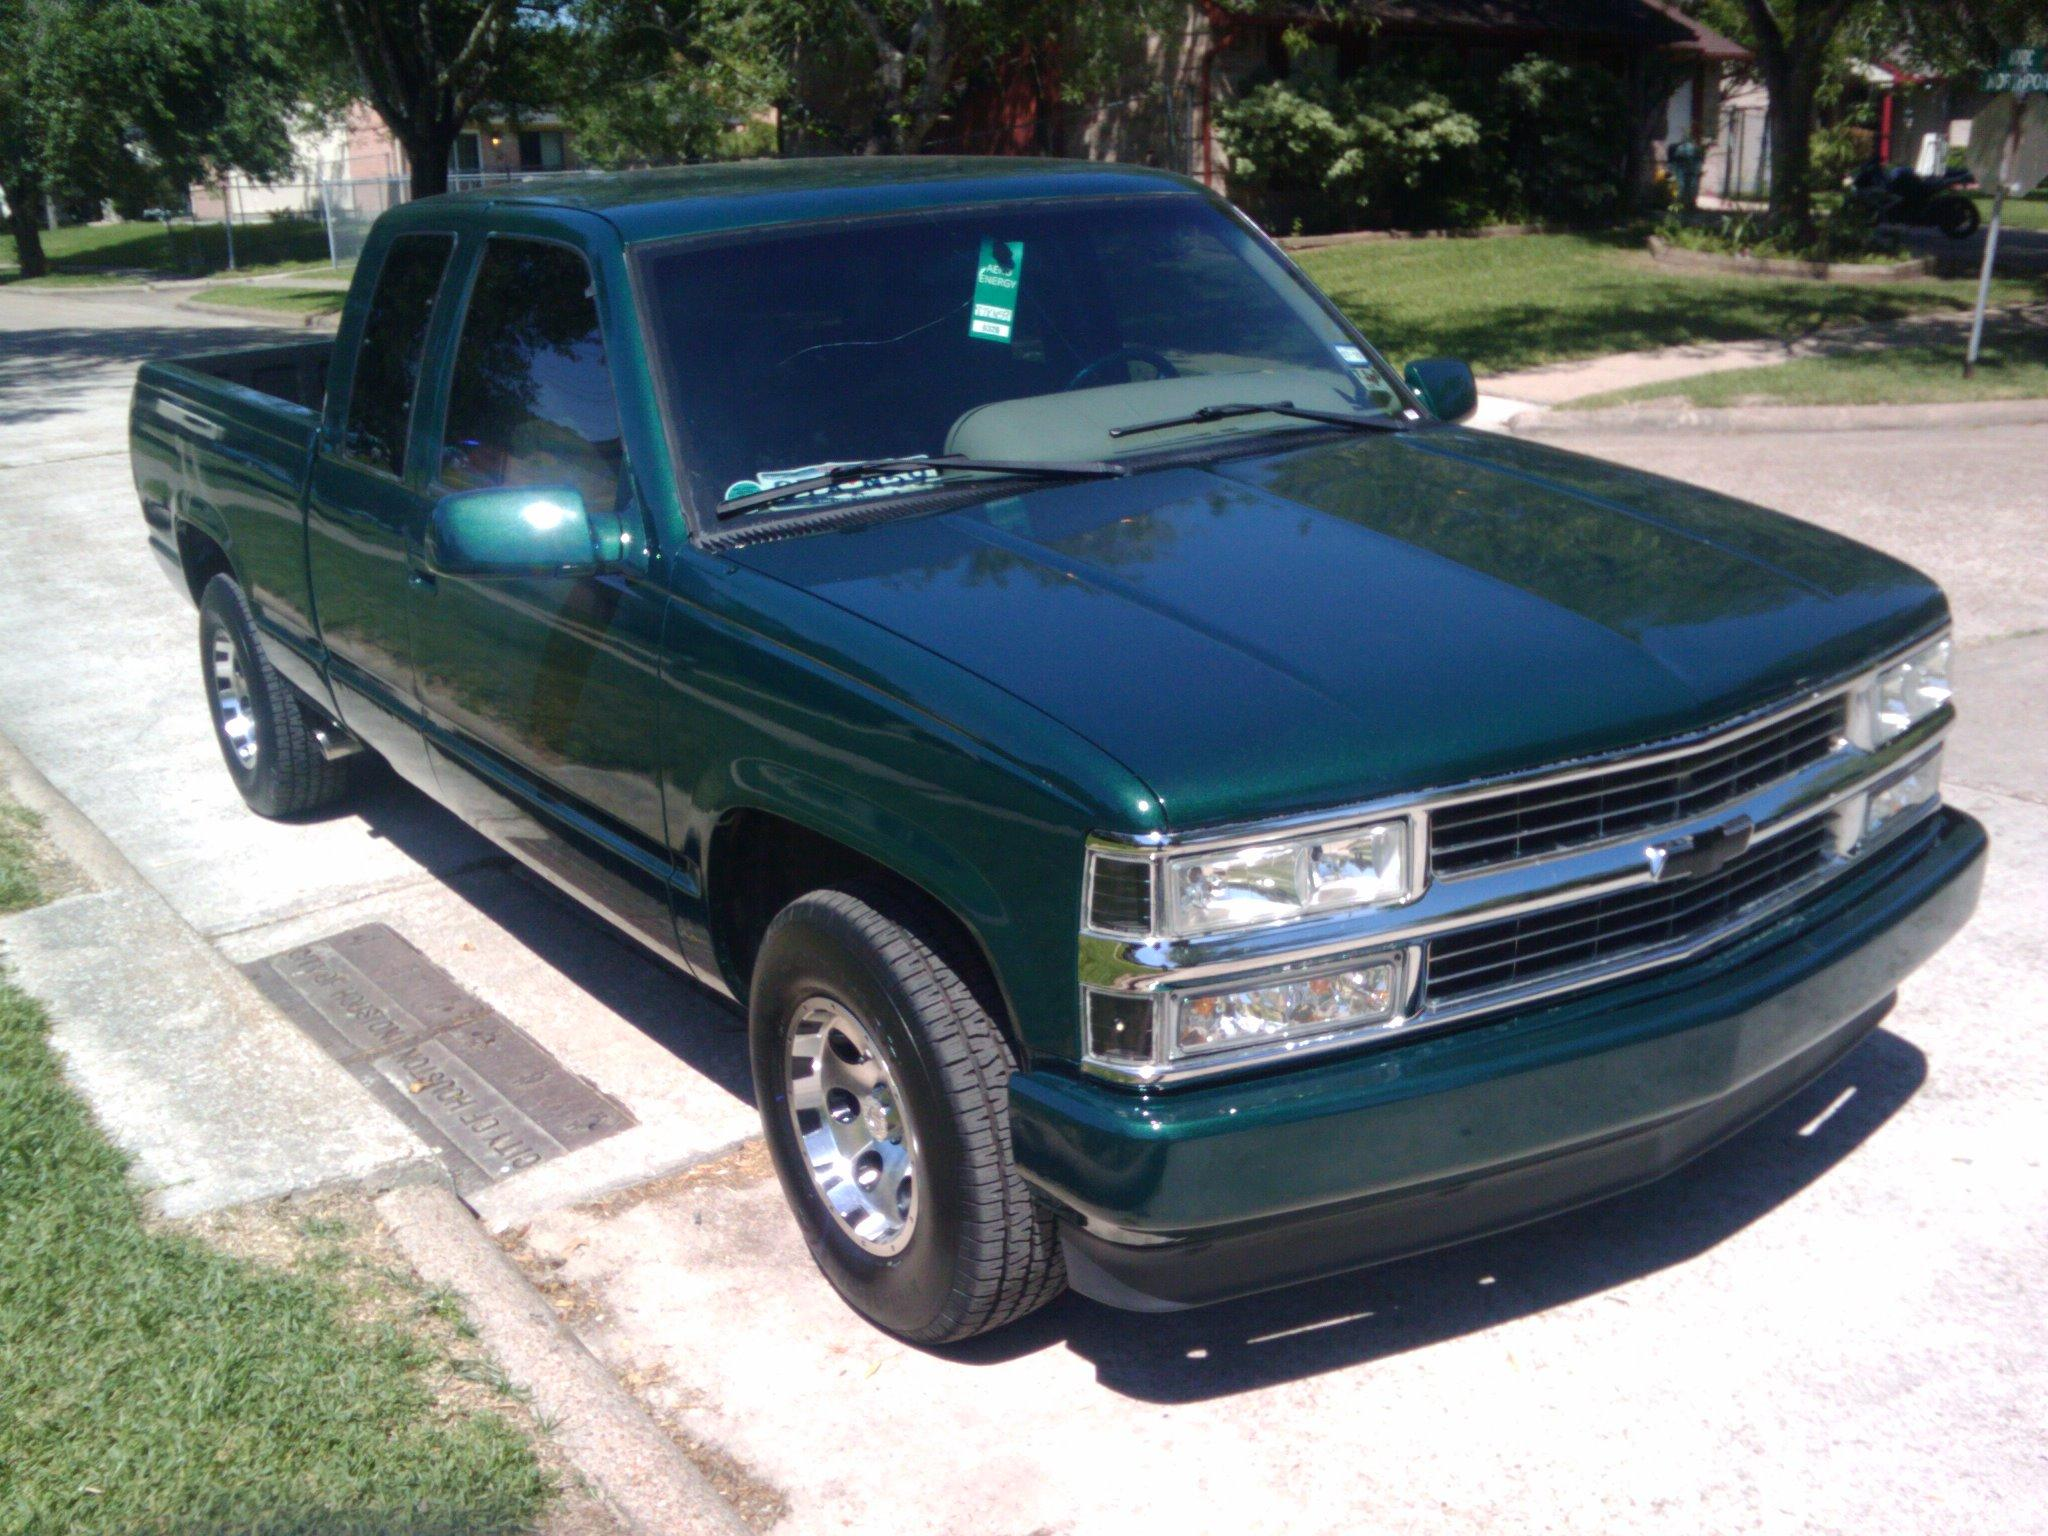 miklowar18 1995 chevrolet silverado 1500 extended cab. Black Bedroom Furniture Sets. Home Design Ideas